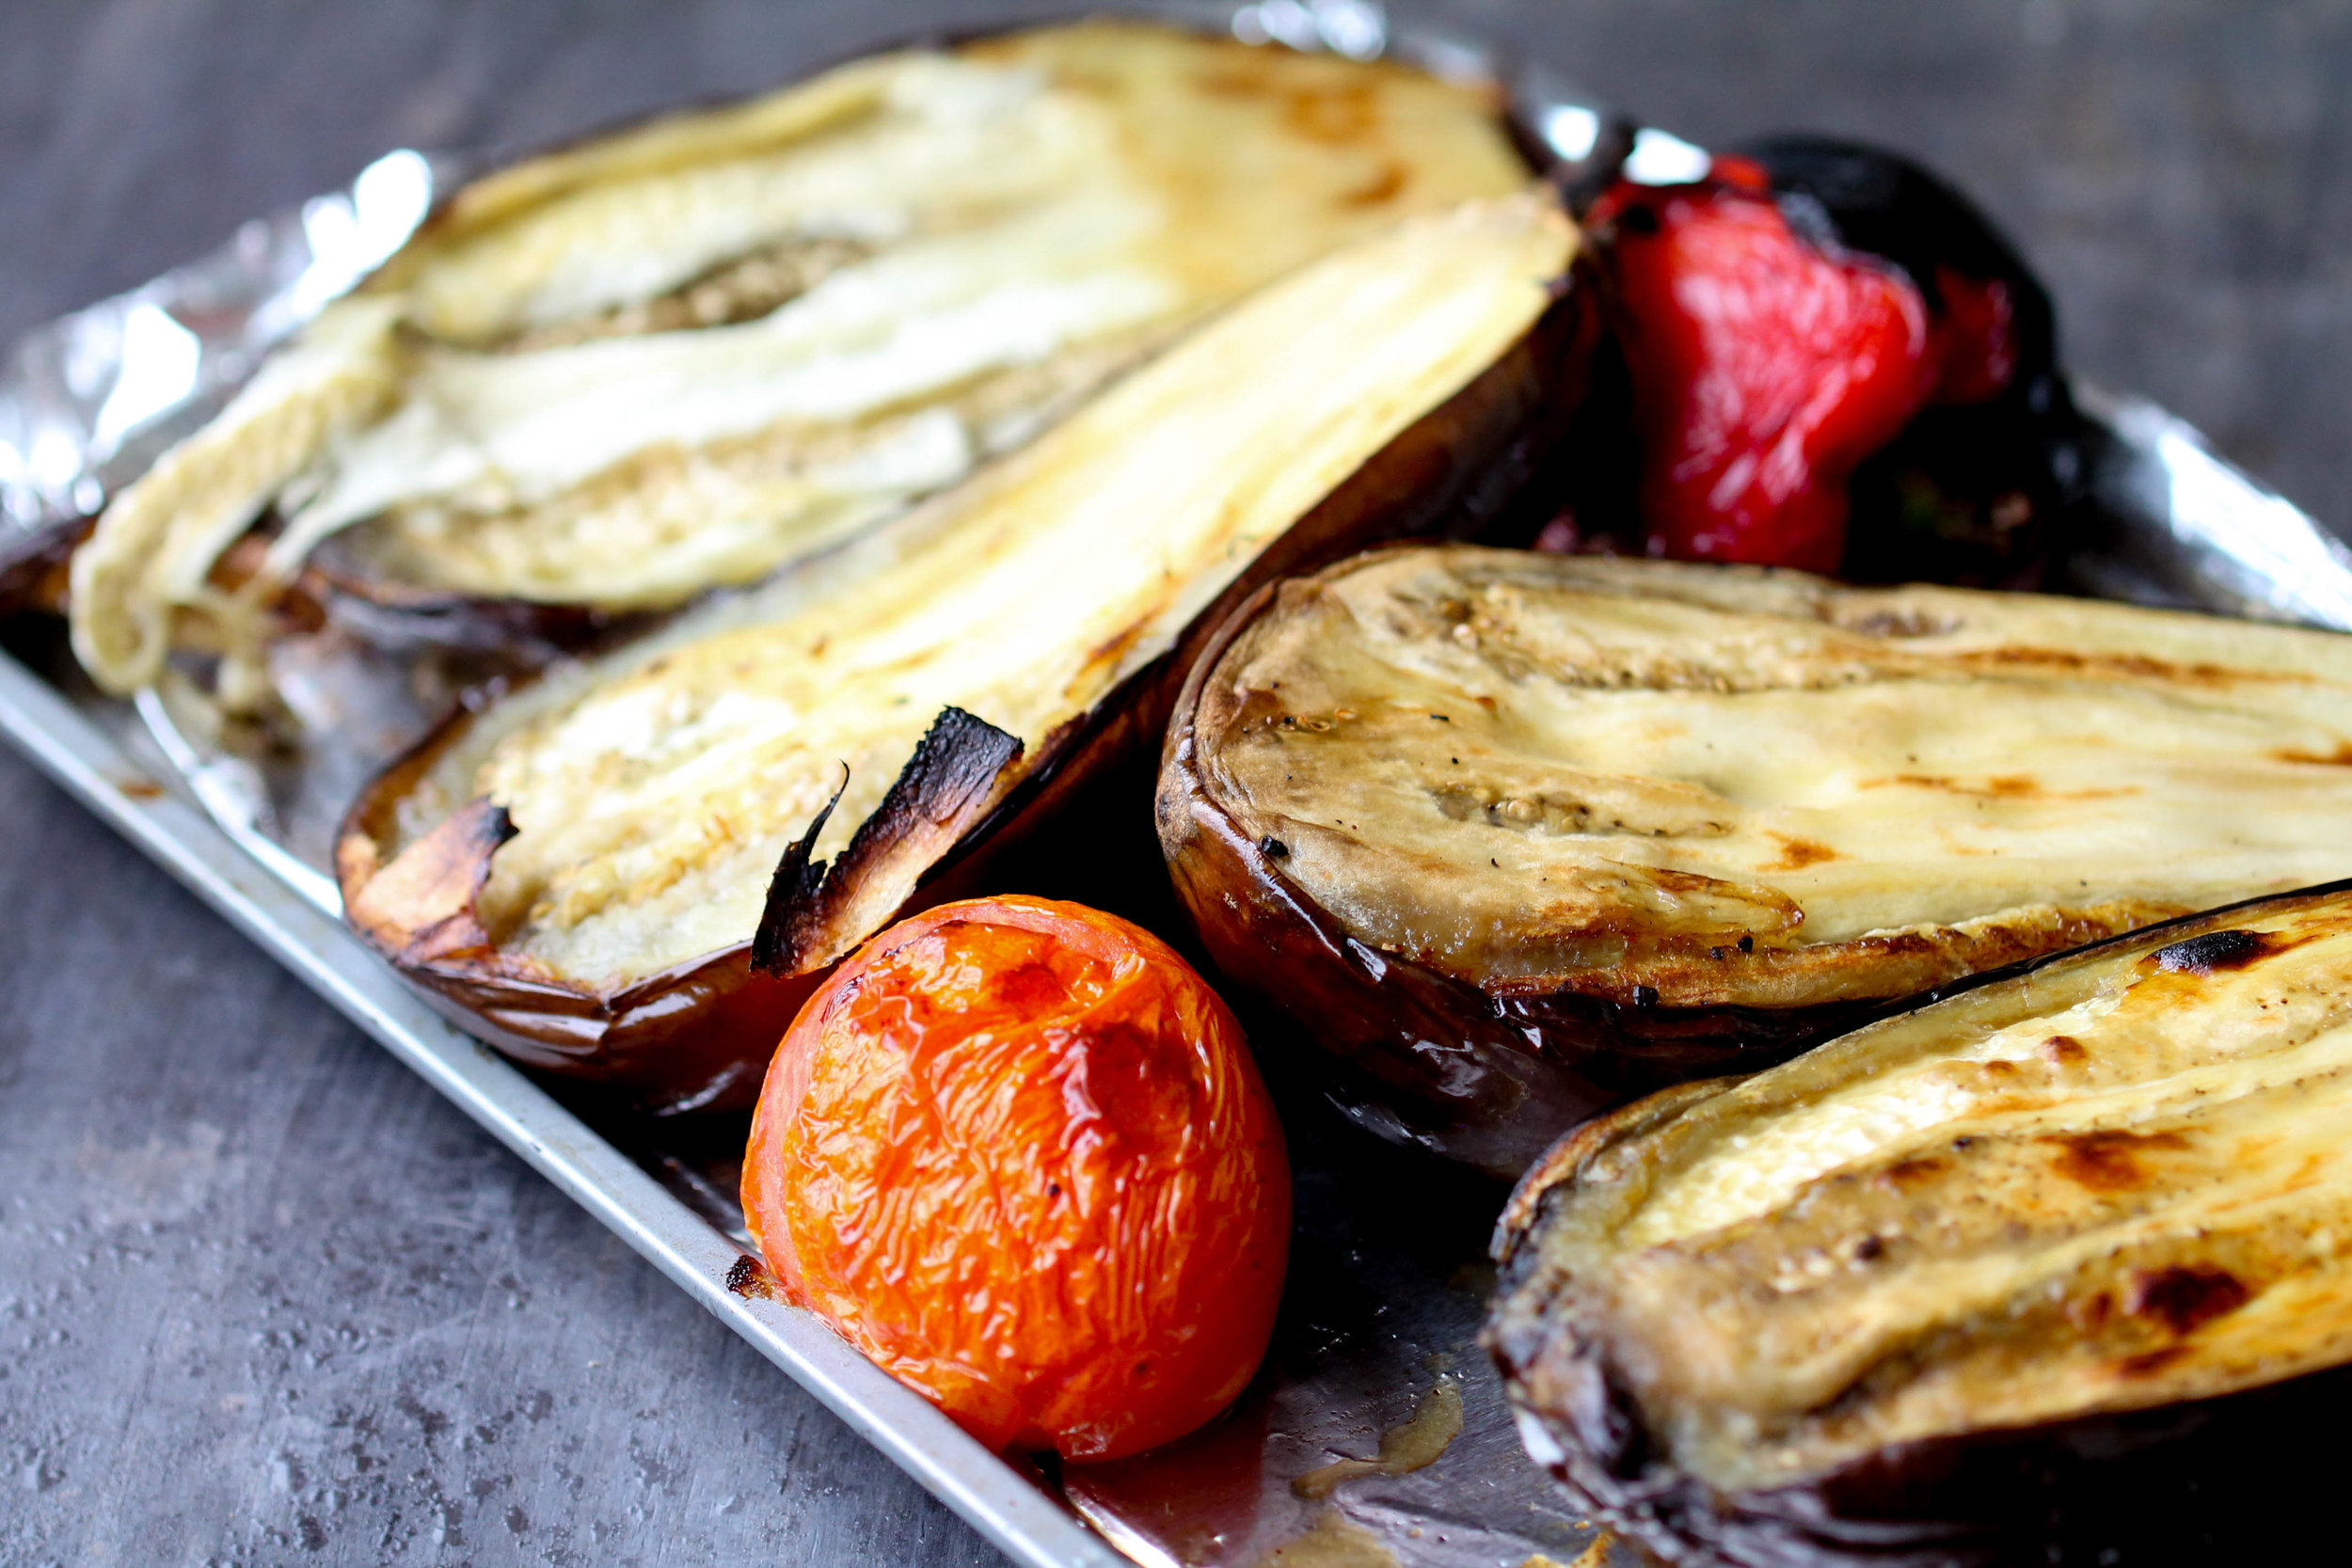 Naturally Vegan, Gluten-Free Roasted Eggplant, Bell Peppers, and Tomato Salad! It works great as side, filling for a quick wrap, or use it as pizza base